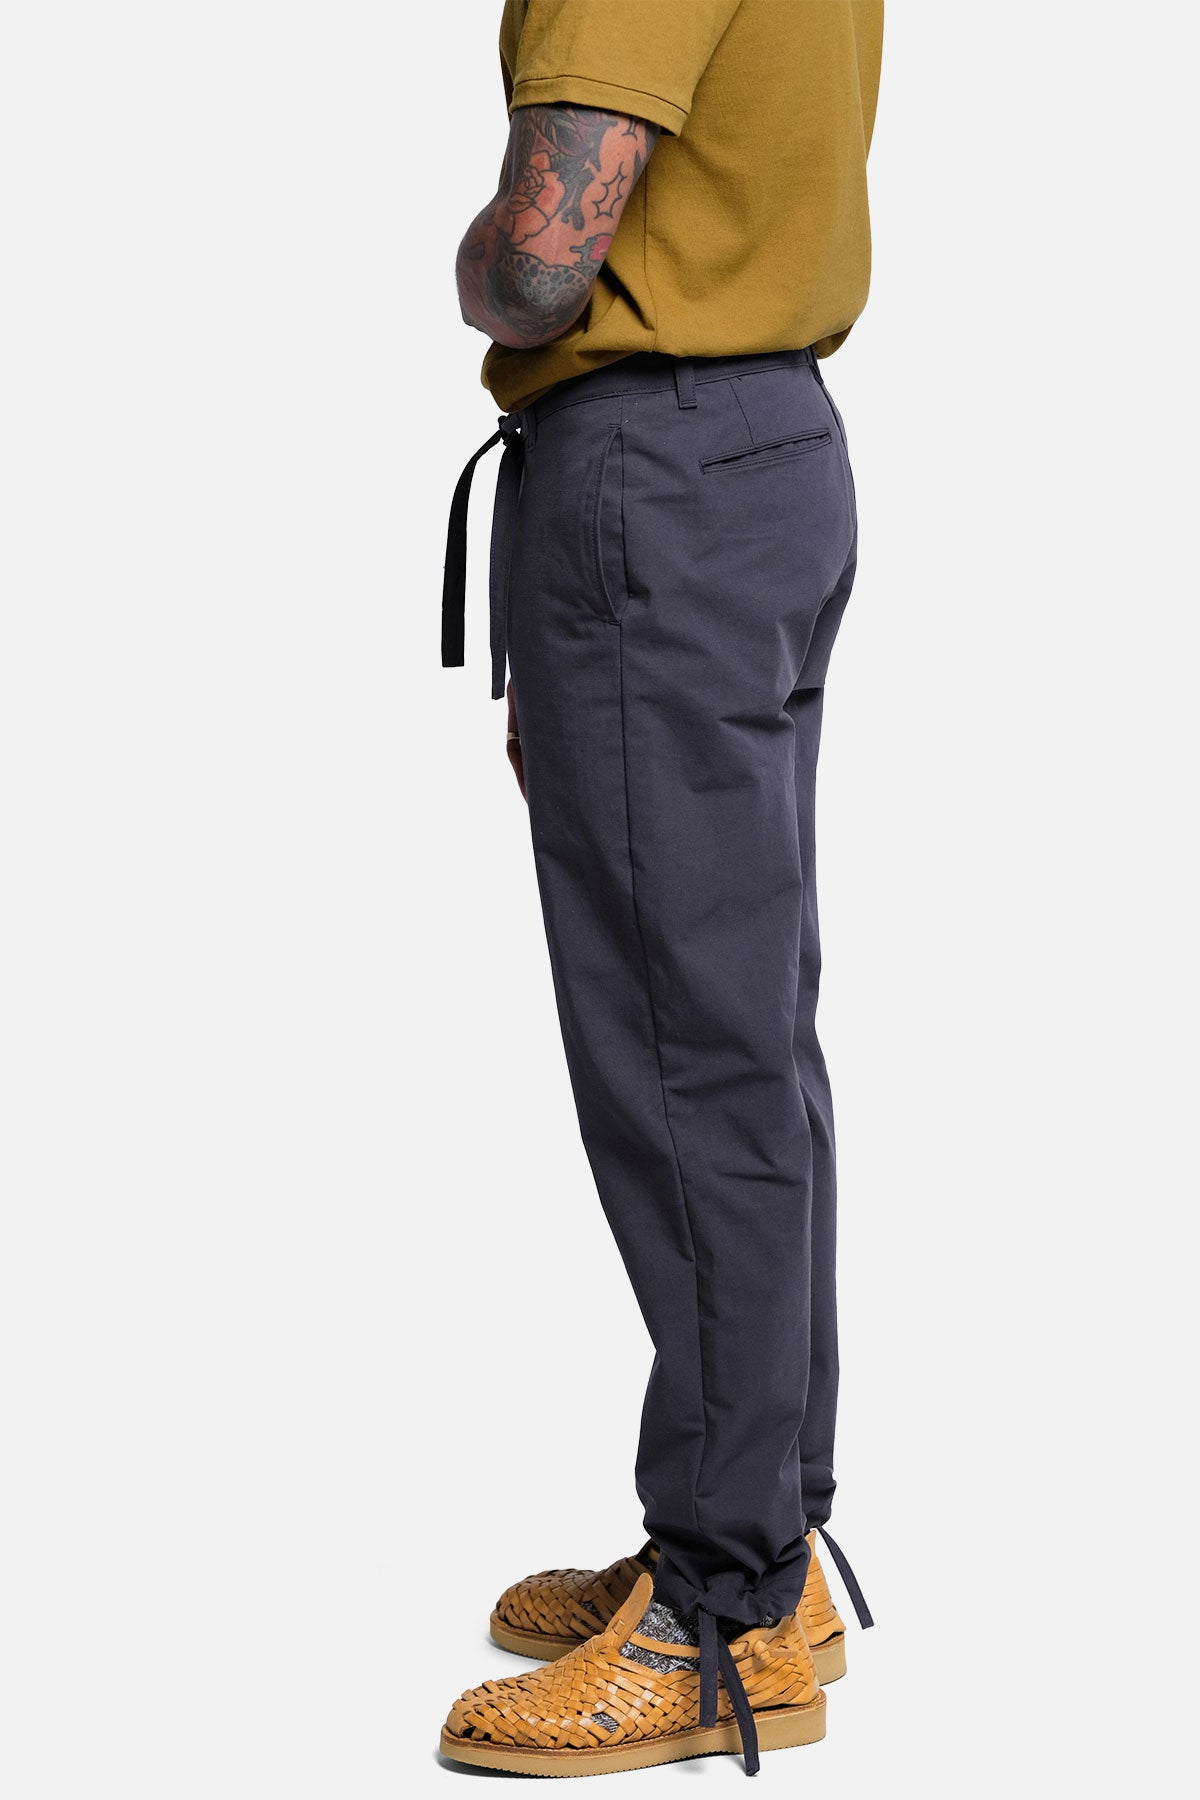 DRAWSTRING PANT IN NAVY RIPSTOP - Fortune Goods